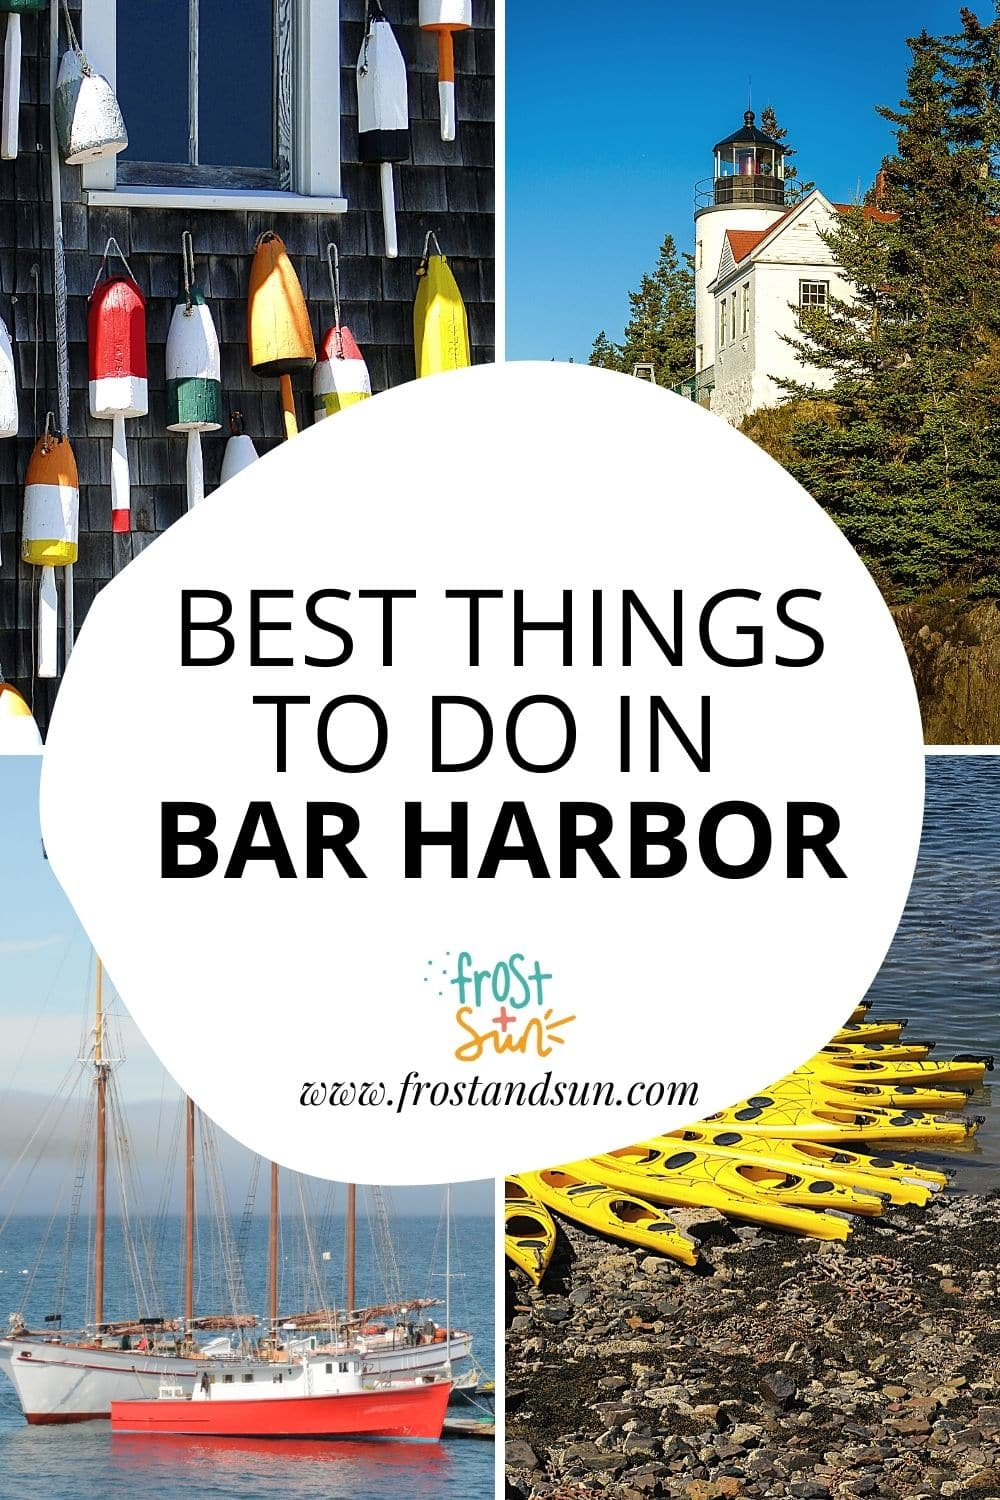 The Best Things to Do in Bar Harbor, Maine